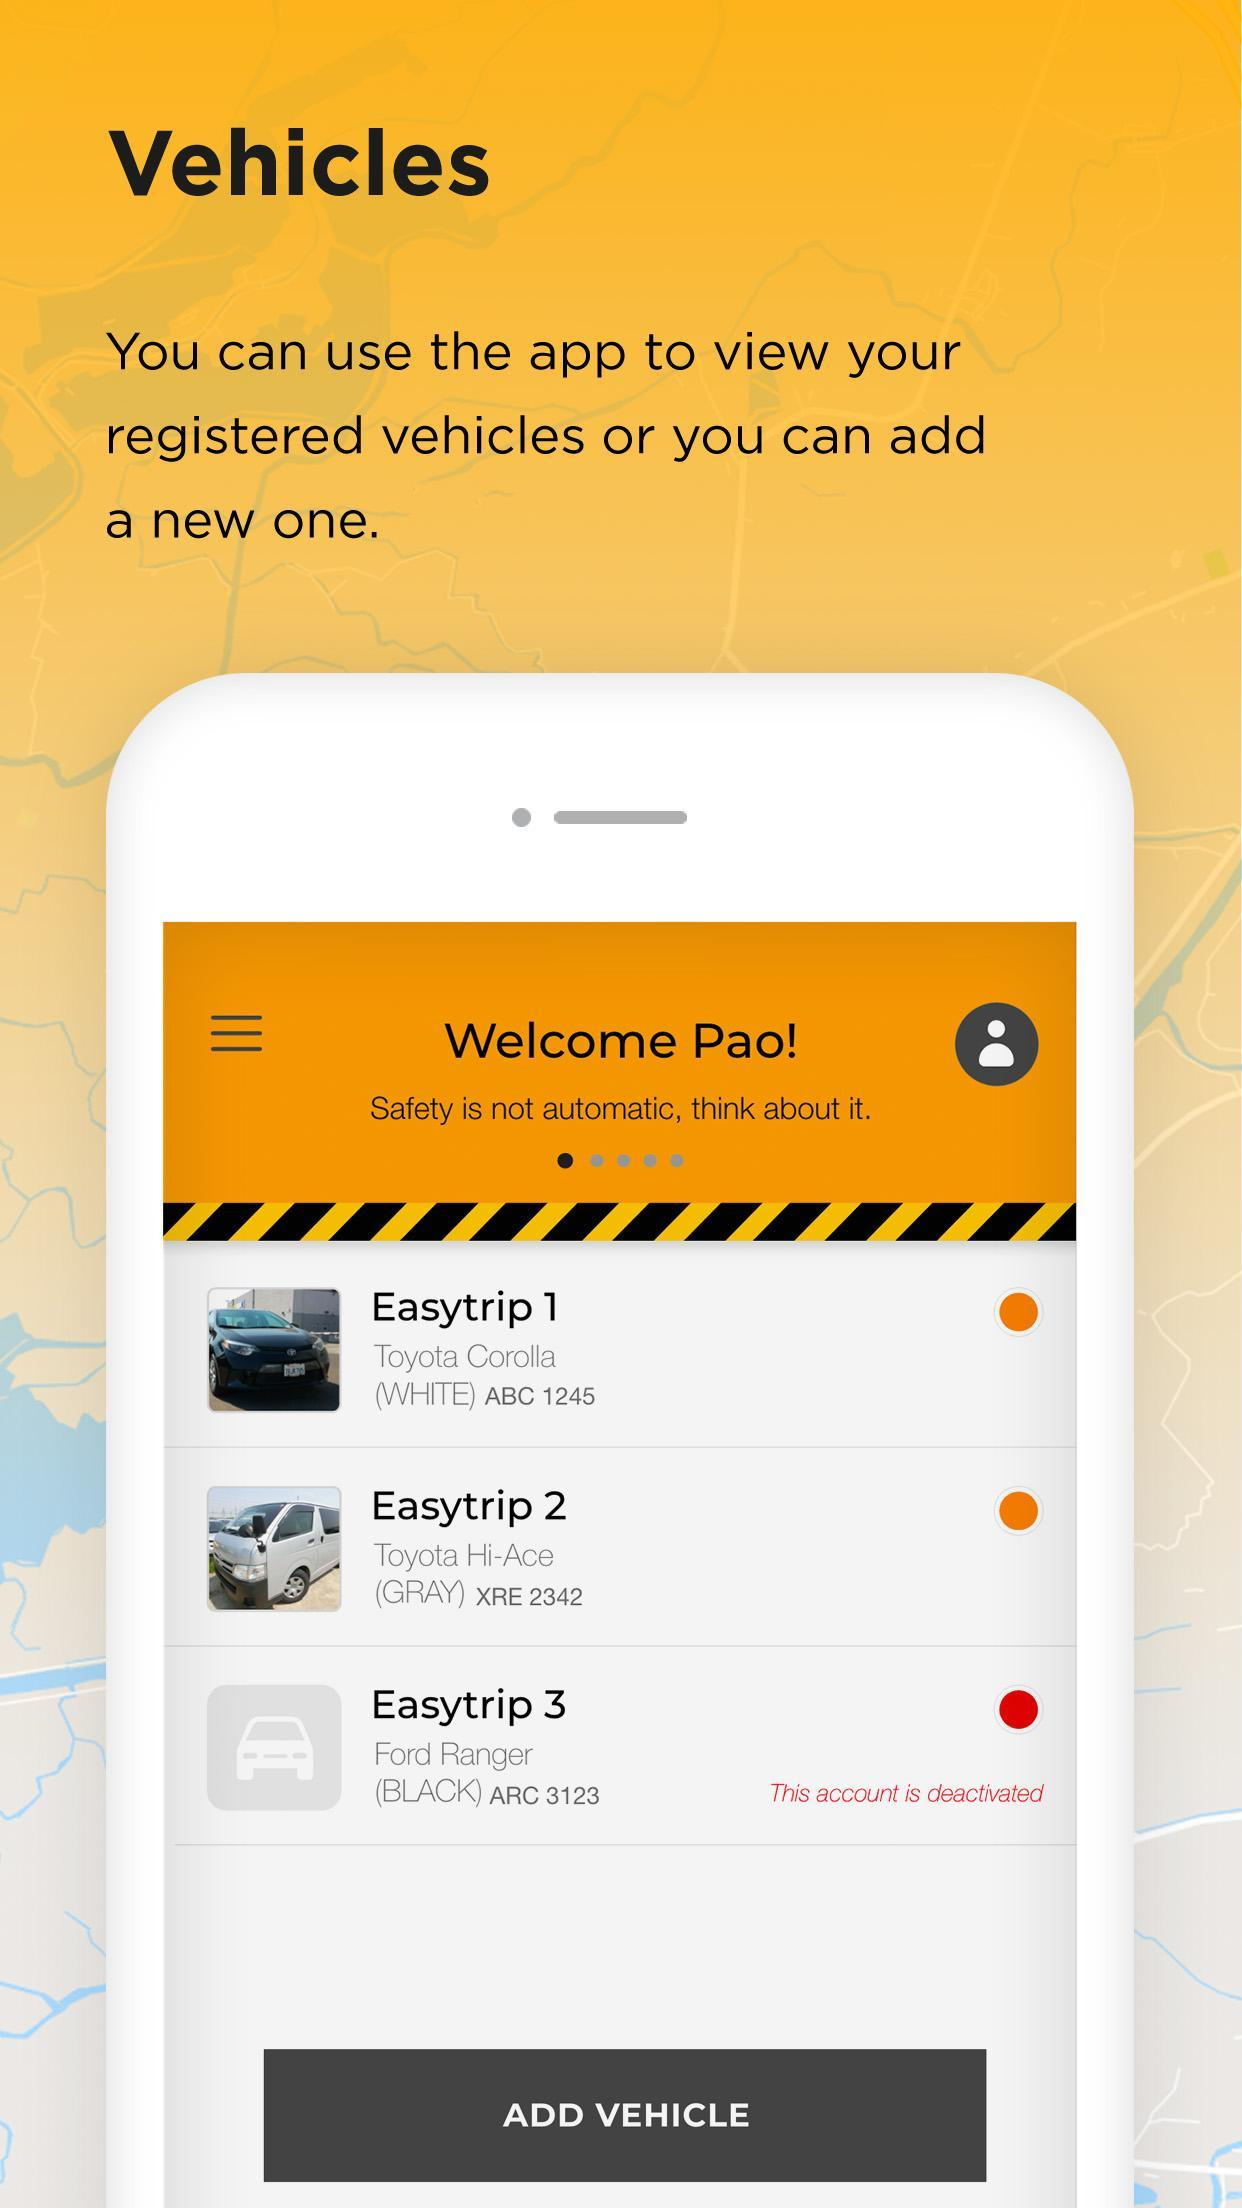 Easytrip Services Corporation 2.1.2 Screenshot 2